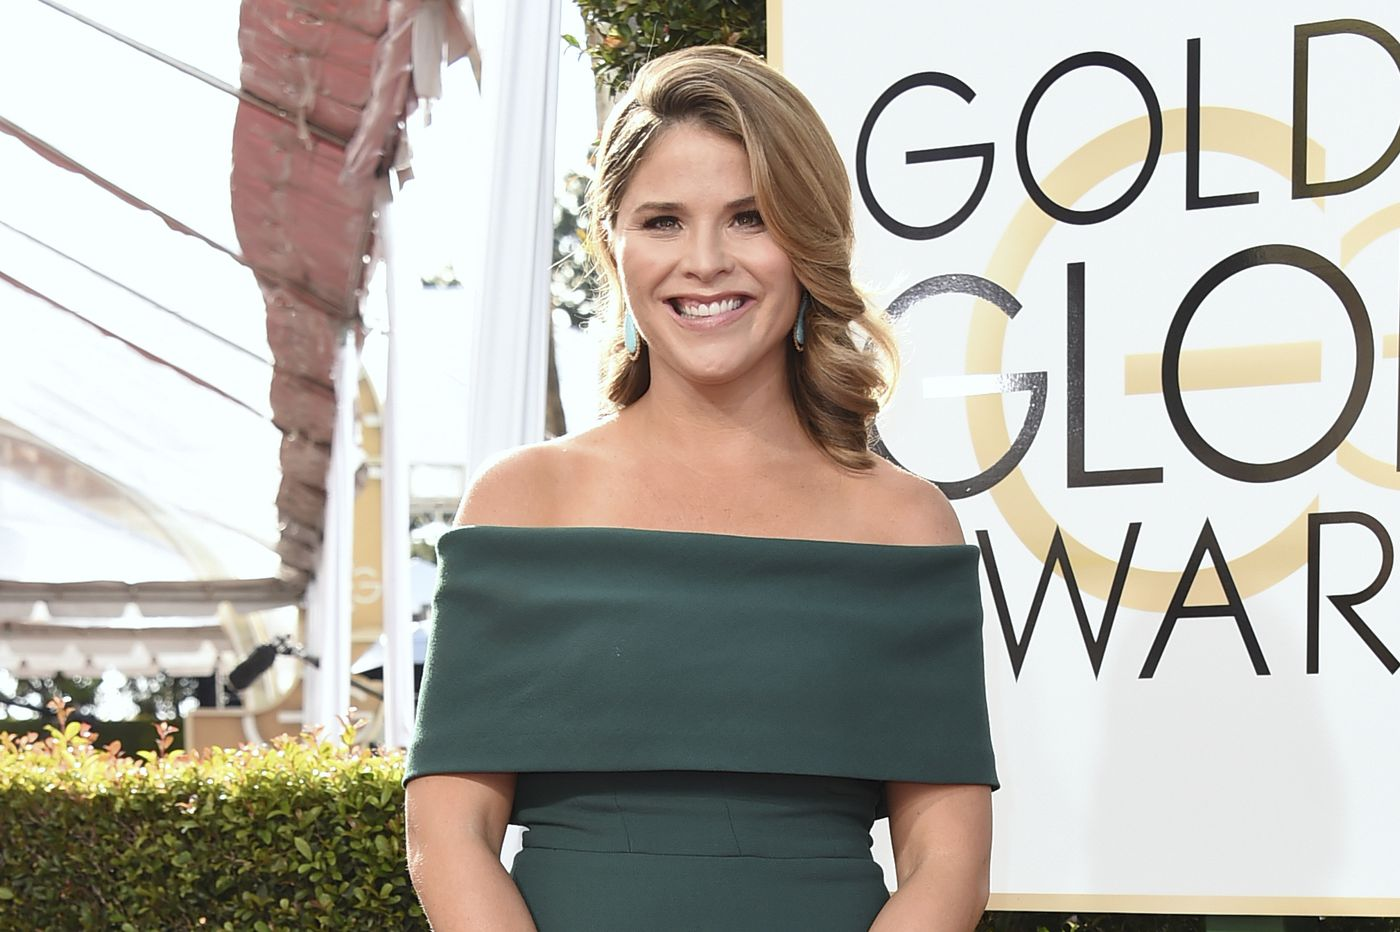 Jenna Bush Hager confides she had an ectopic pregnancy. Here's what happens to women with the condition.